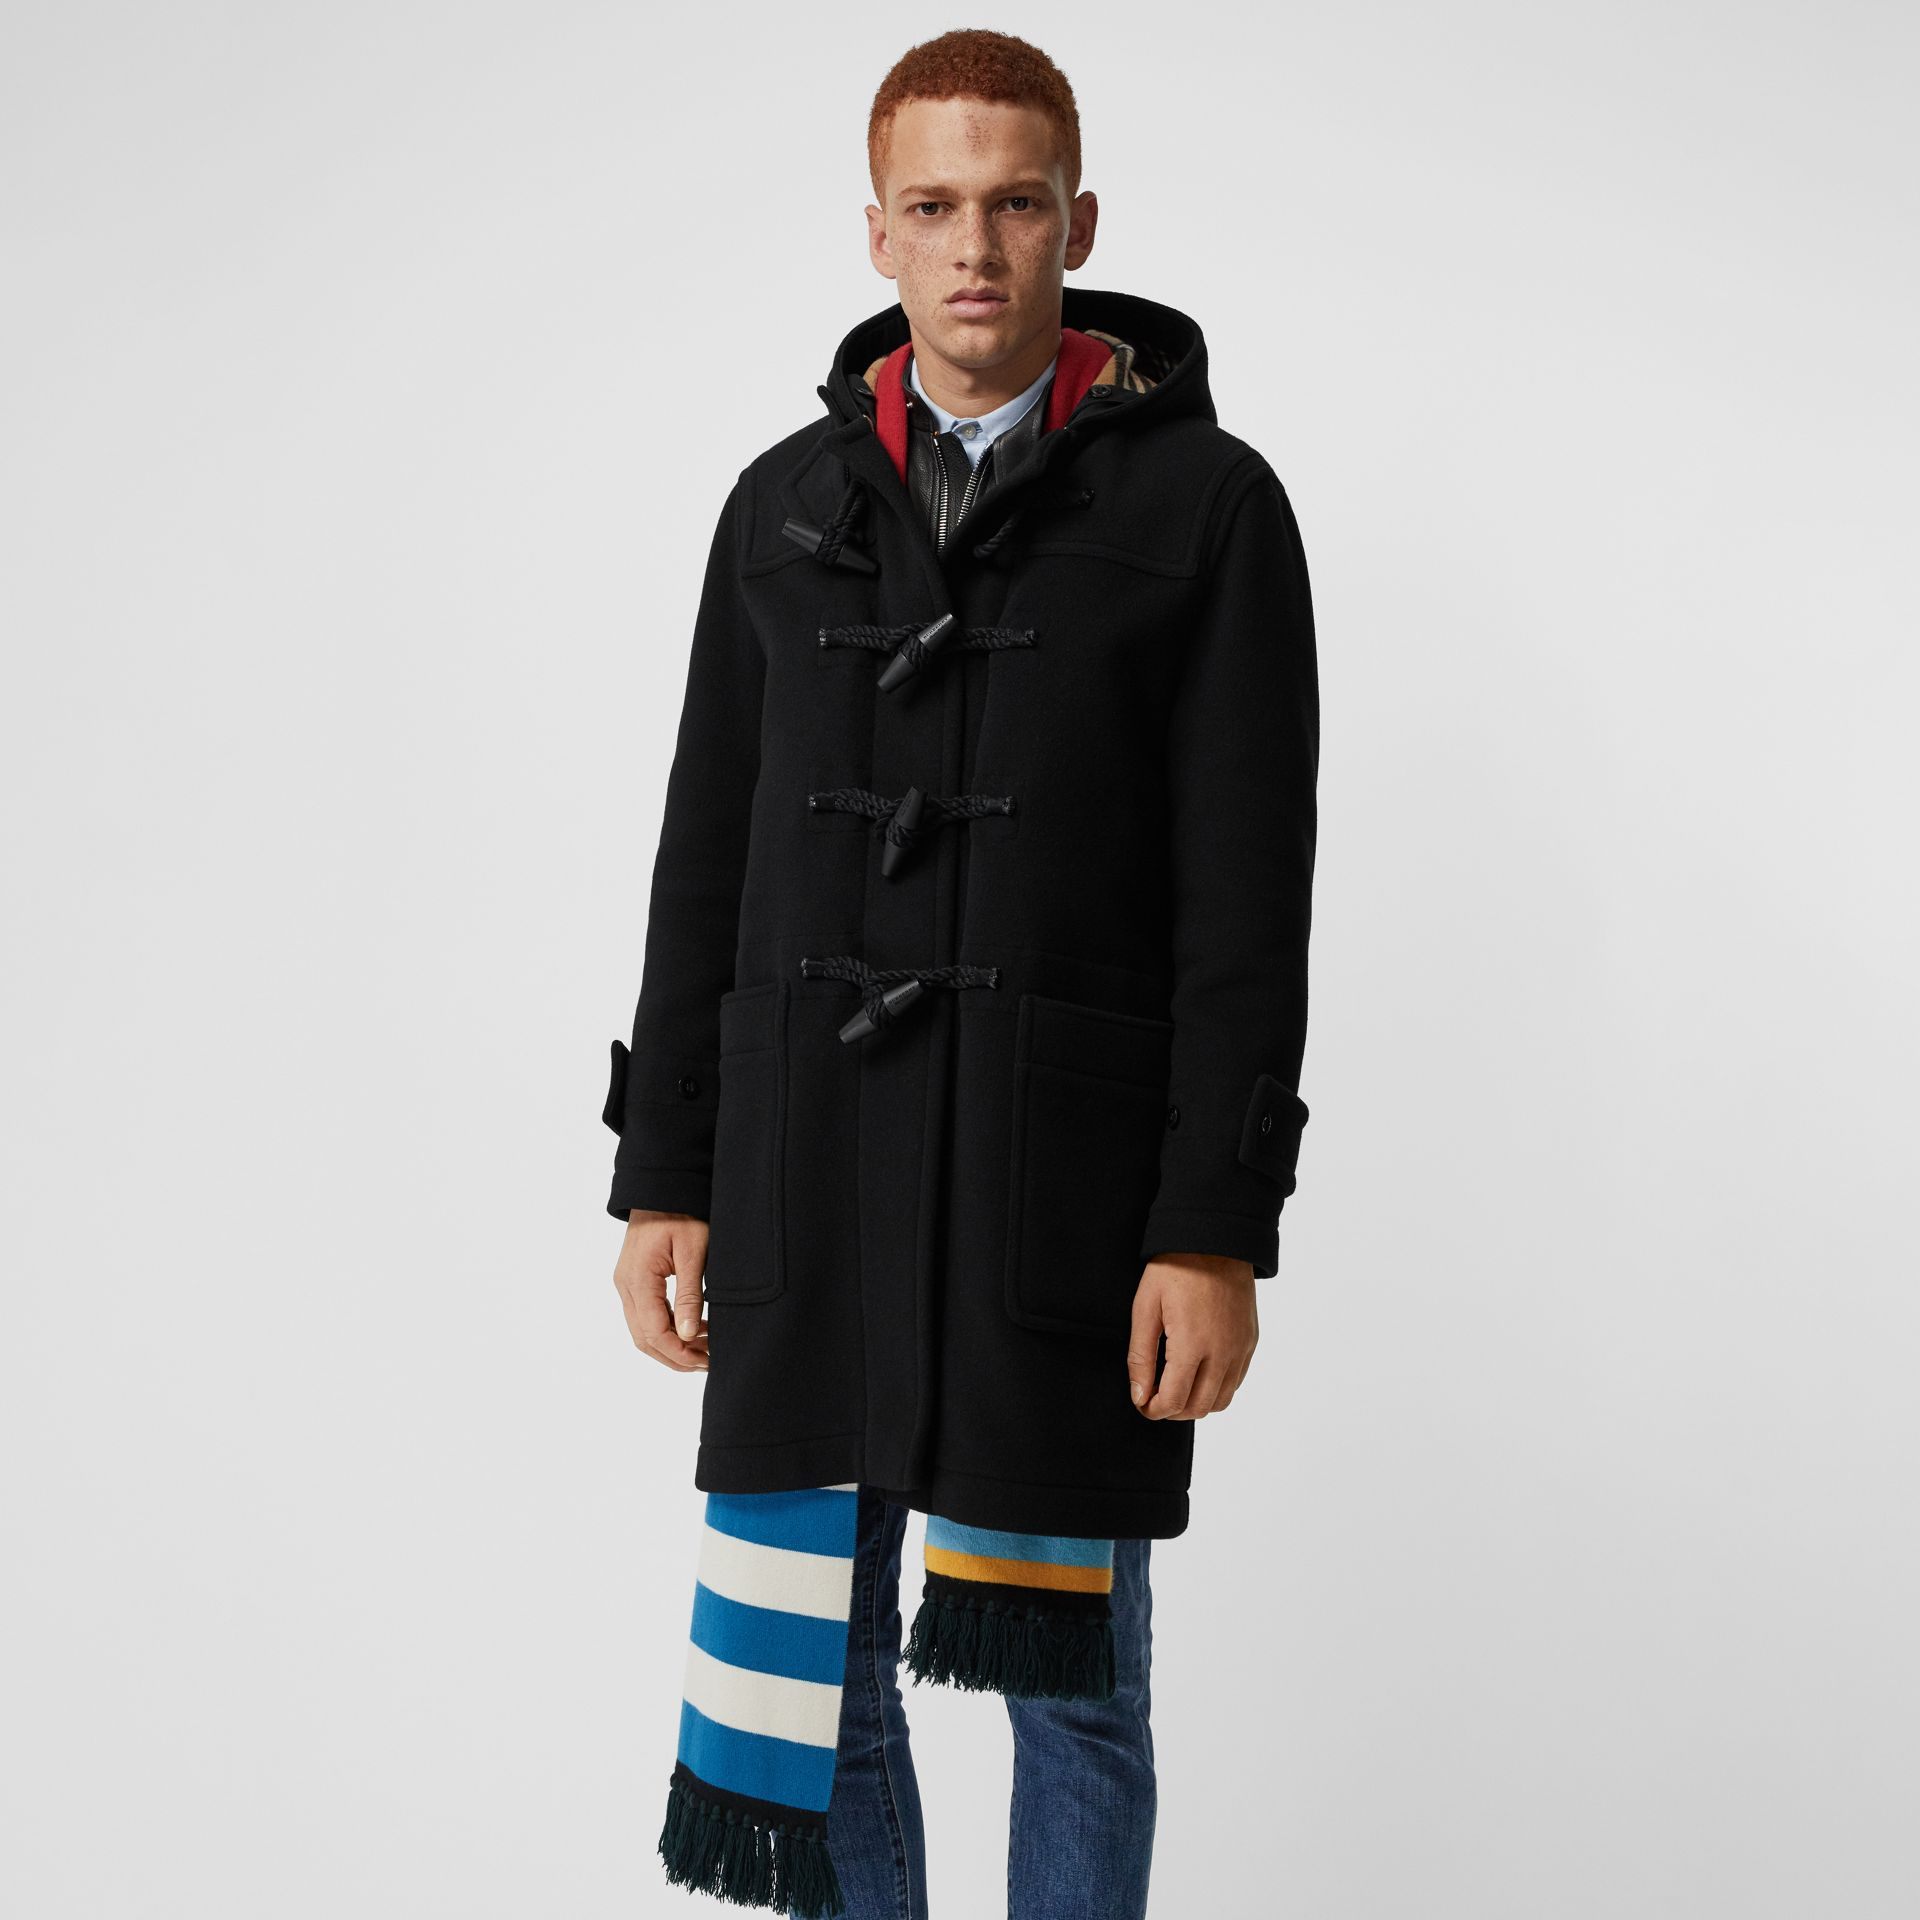 Vintage Check Detail Wool Blend Hooded Duffle Coat in Black - Men | Burberry - gallery image 5